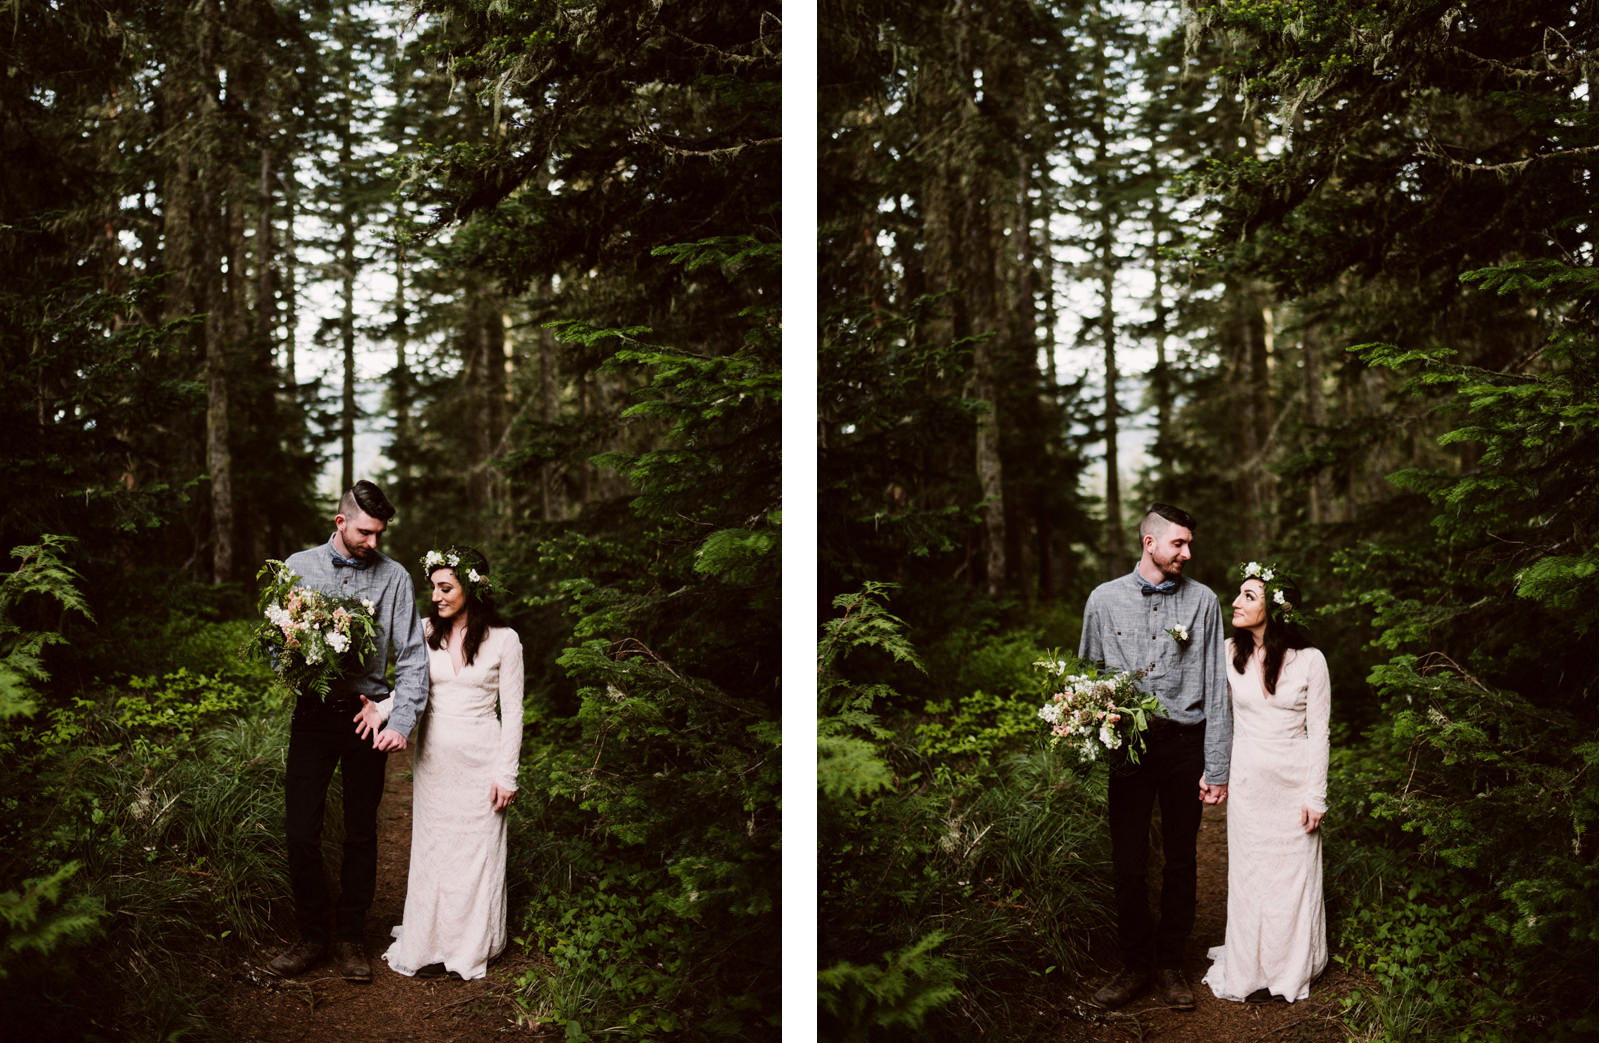 katelynnethan-blog-13 MOUNT RAINIER LOOKOUT ELOPEMENT